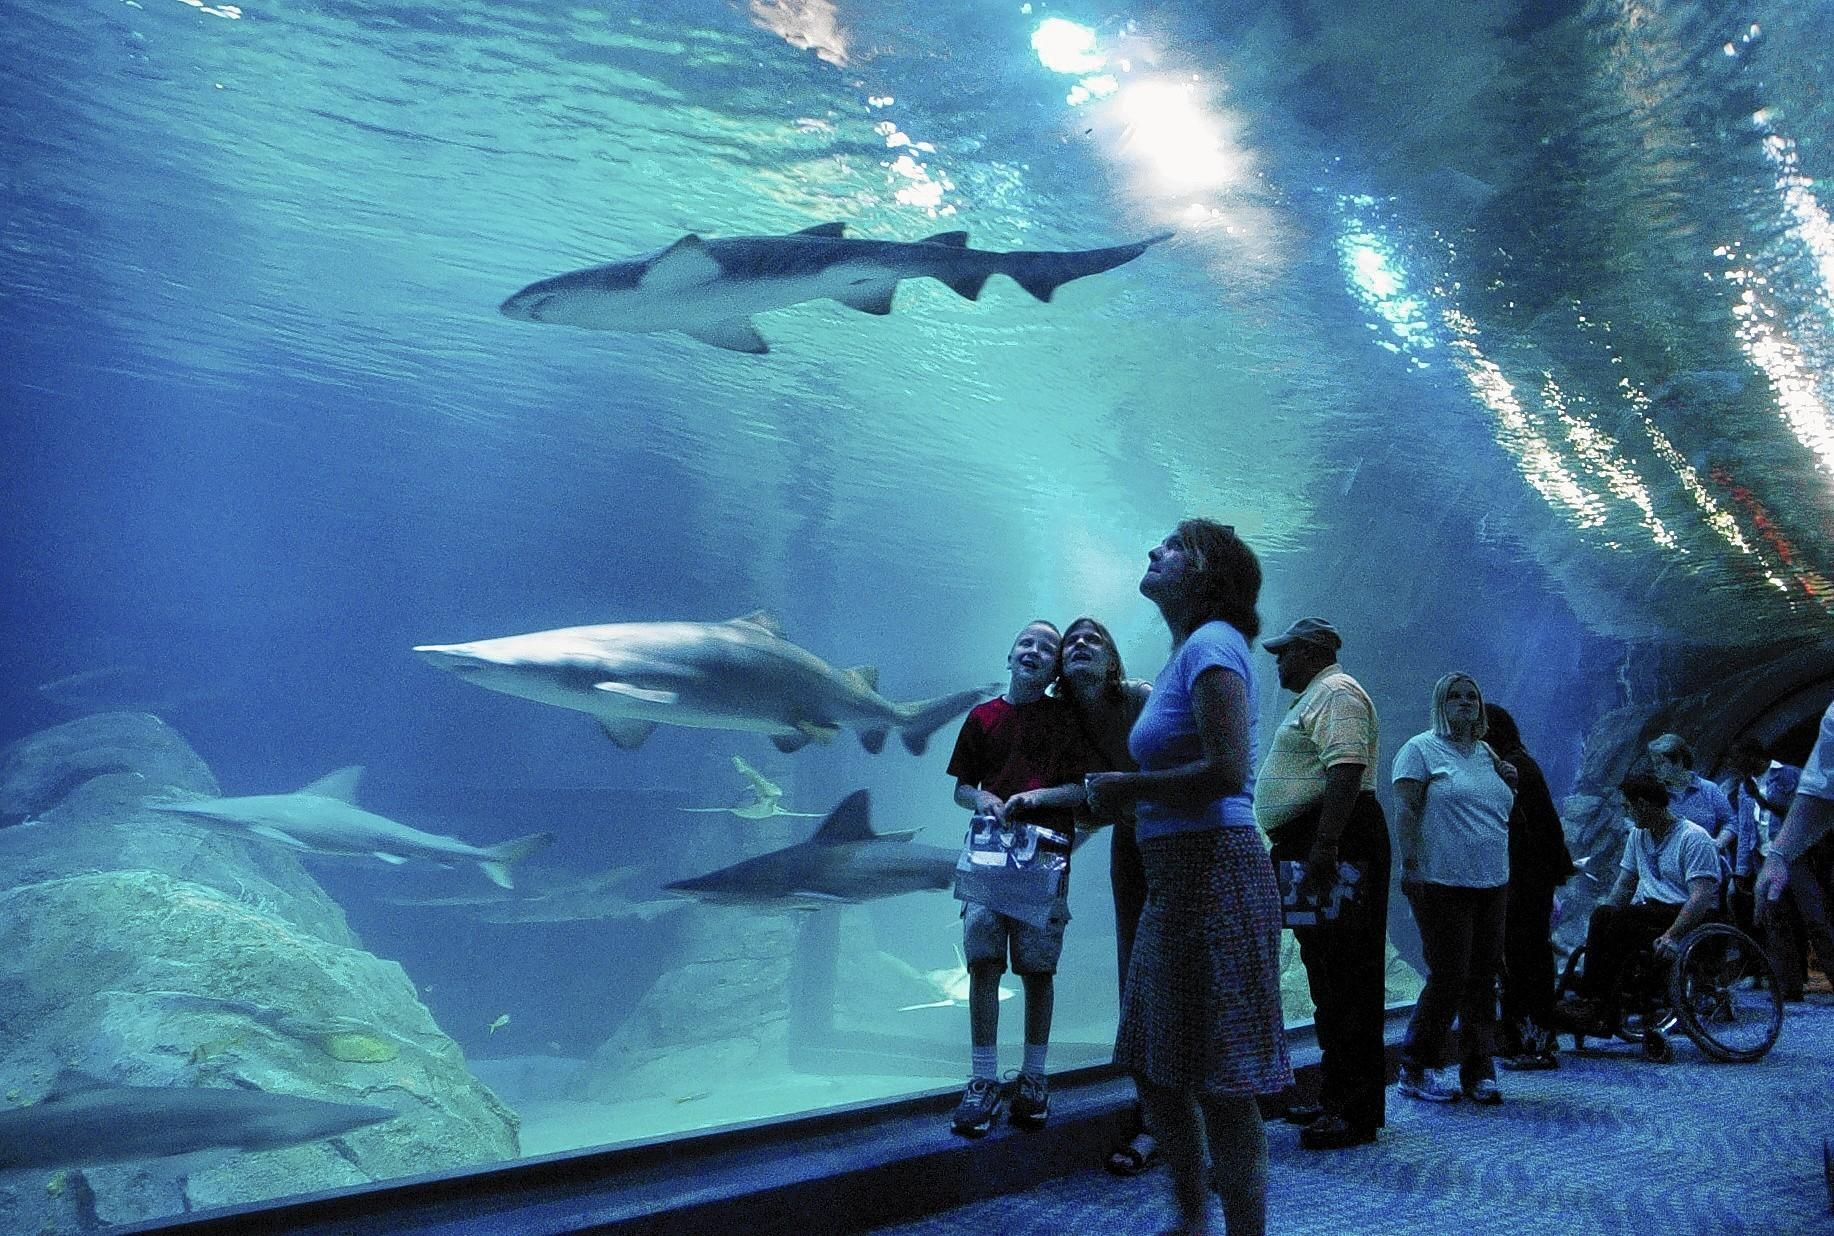 Adventure Aquarium | Adventure, Fun family activities ...